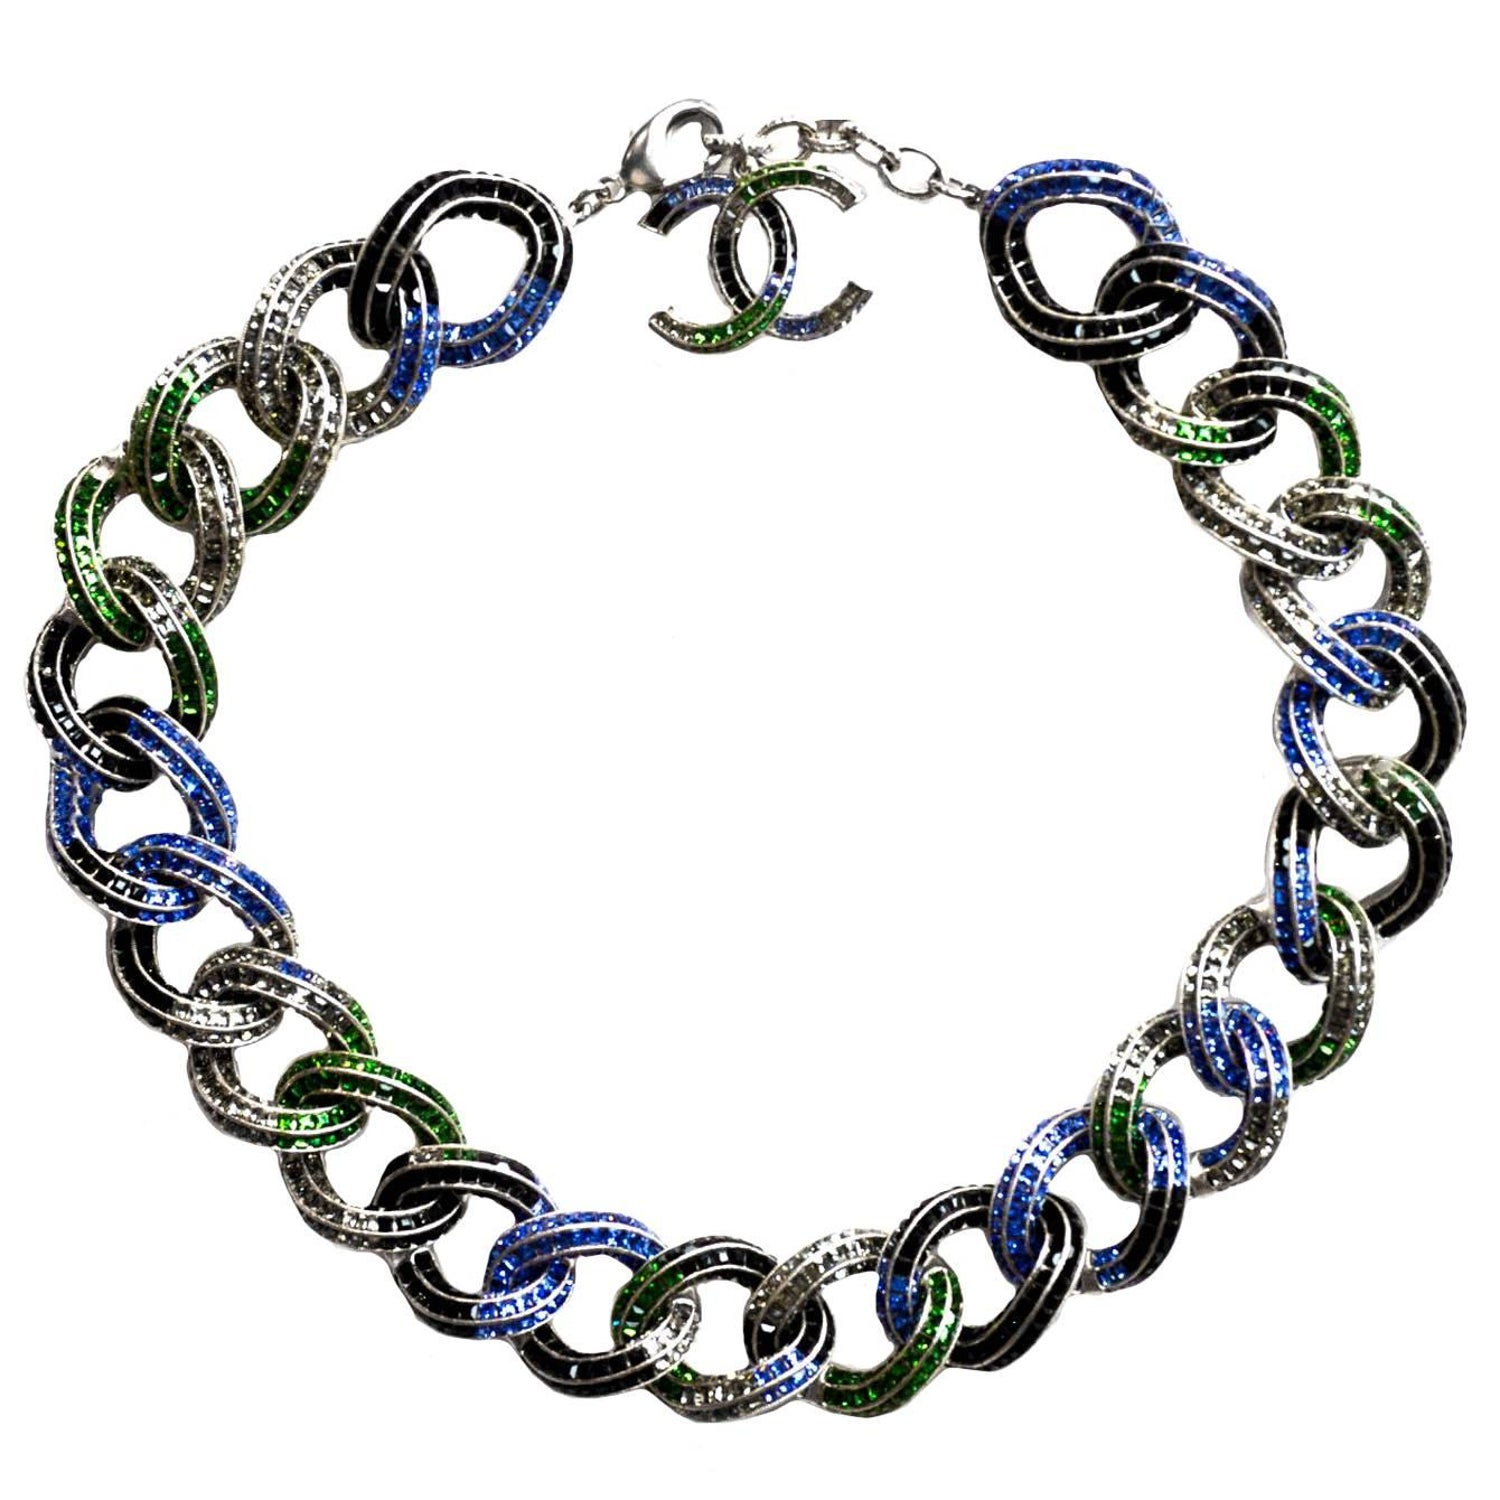 67a7c10ecefc Chanel '15 Runway Multi-Colored Crystal Encrusted Chain Link Necklace rt.  $6,650 at 1stdibs